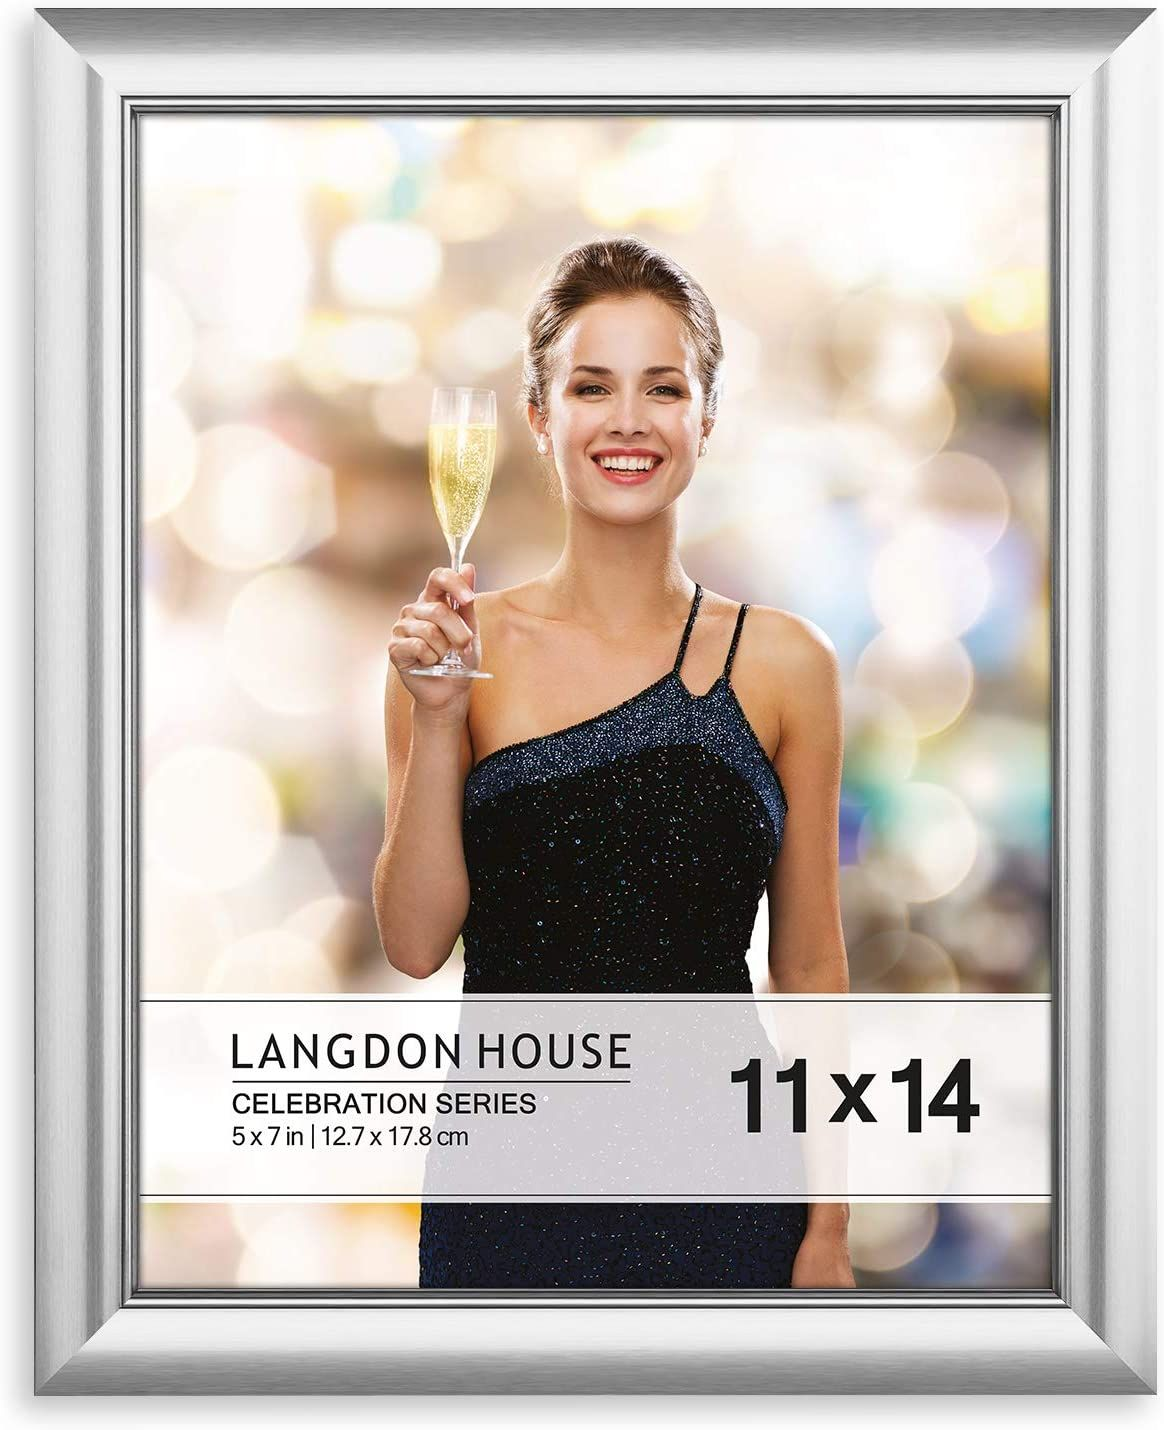 Amazonsmile Langdon House 11x14 Picture Frame 1 Pack Silver Silver Photo Frame 11 X 14 Wall Mount Or Table T In 2020 11x14 Picture Frame Celebrities Photo Frame